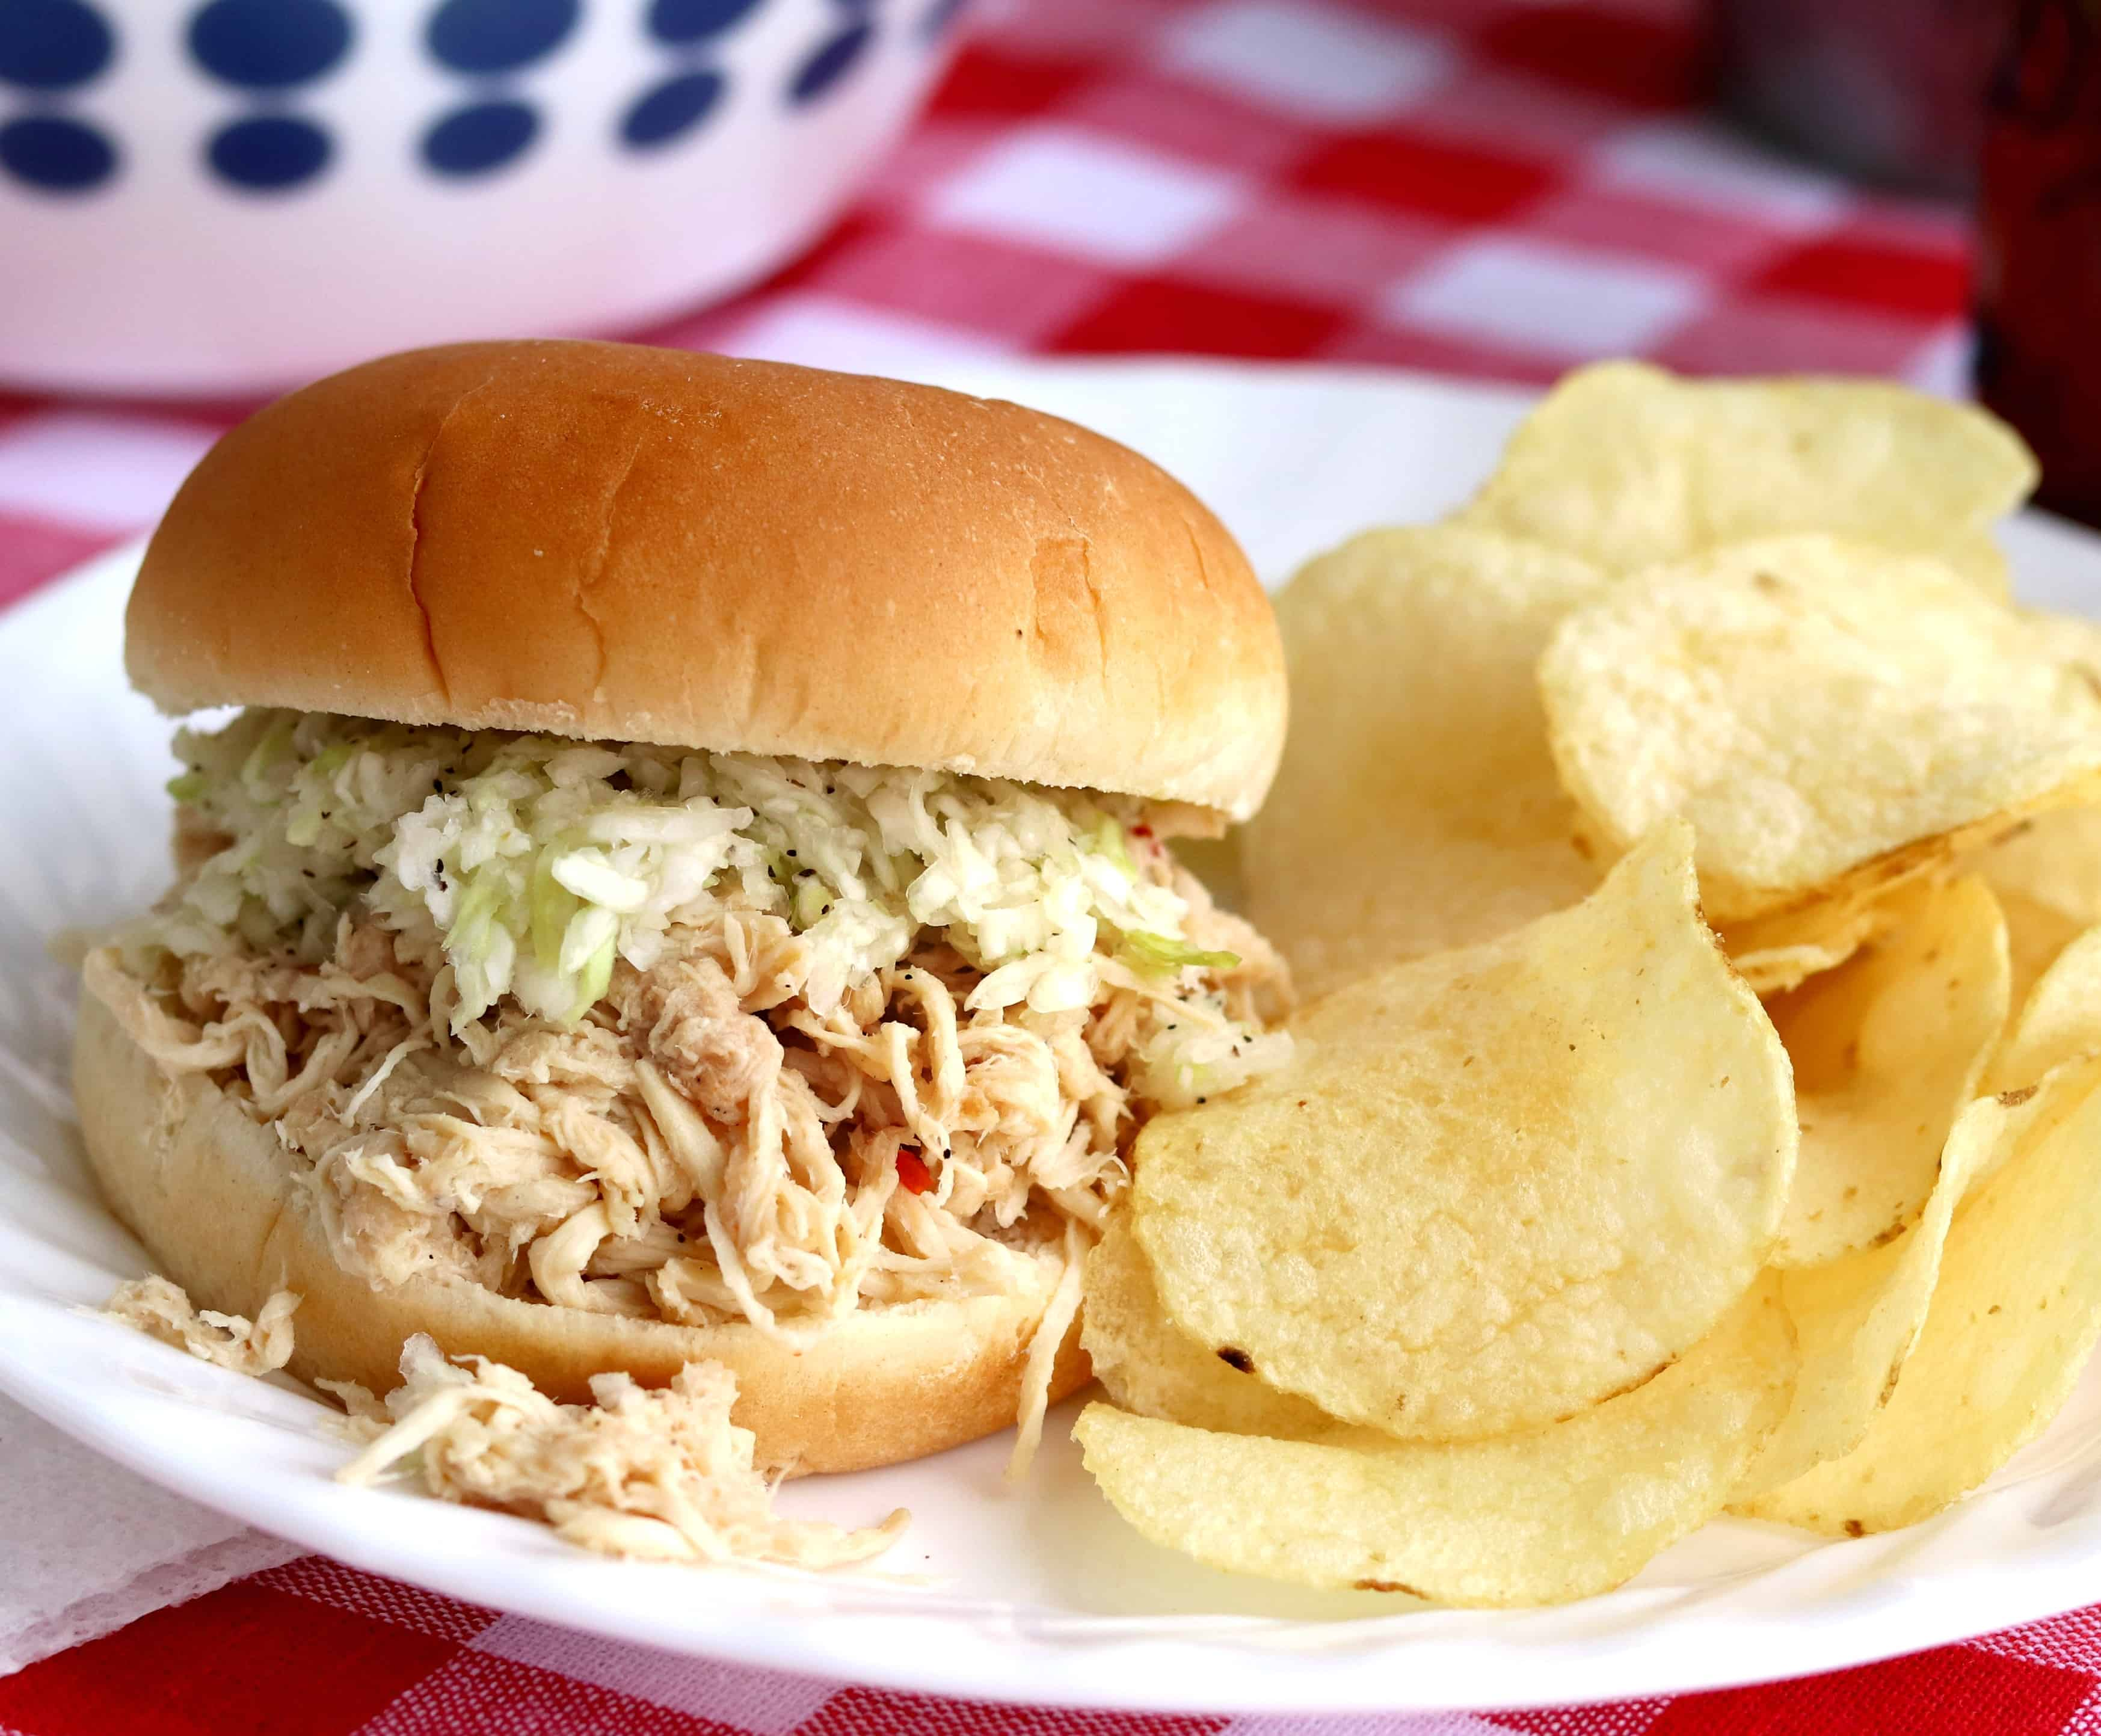 North Alabama Style Pulled Chicken BBQ - And Bringing Grace to a World of Animosity